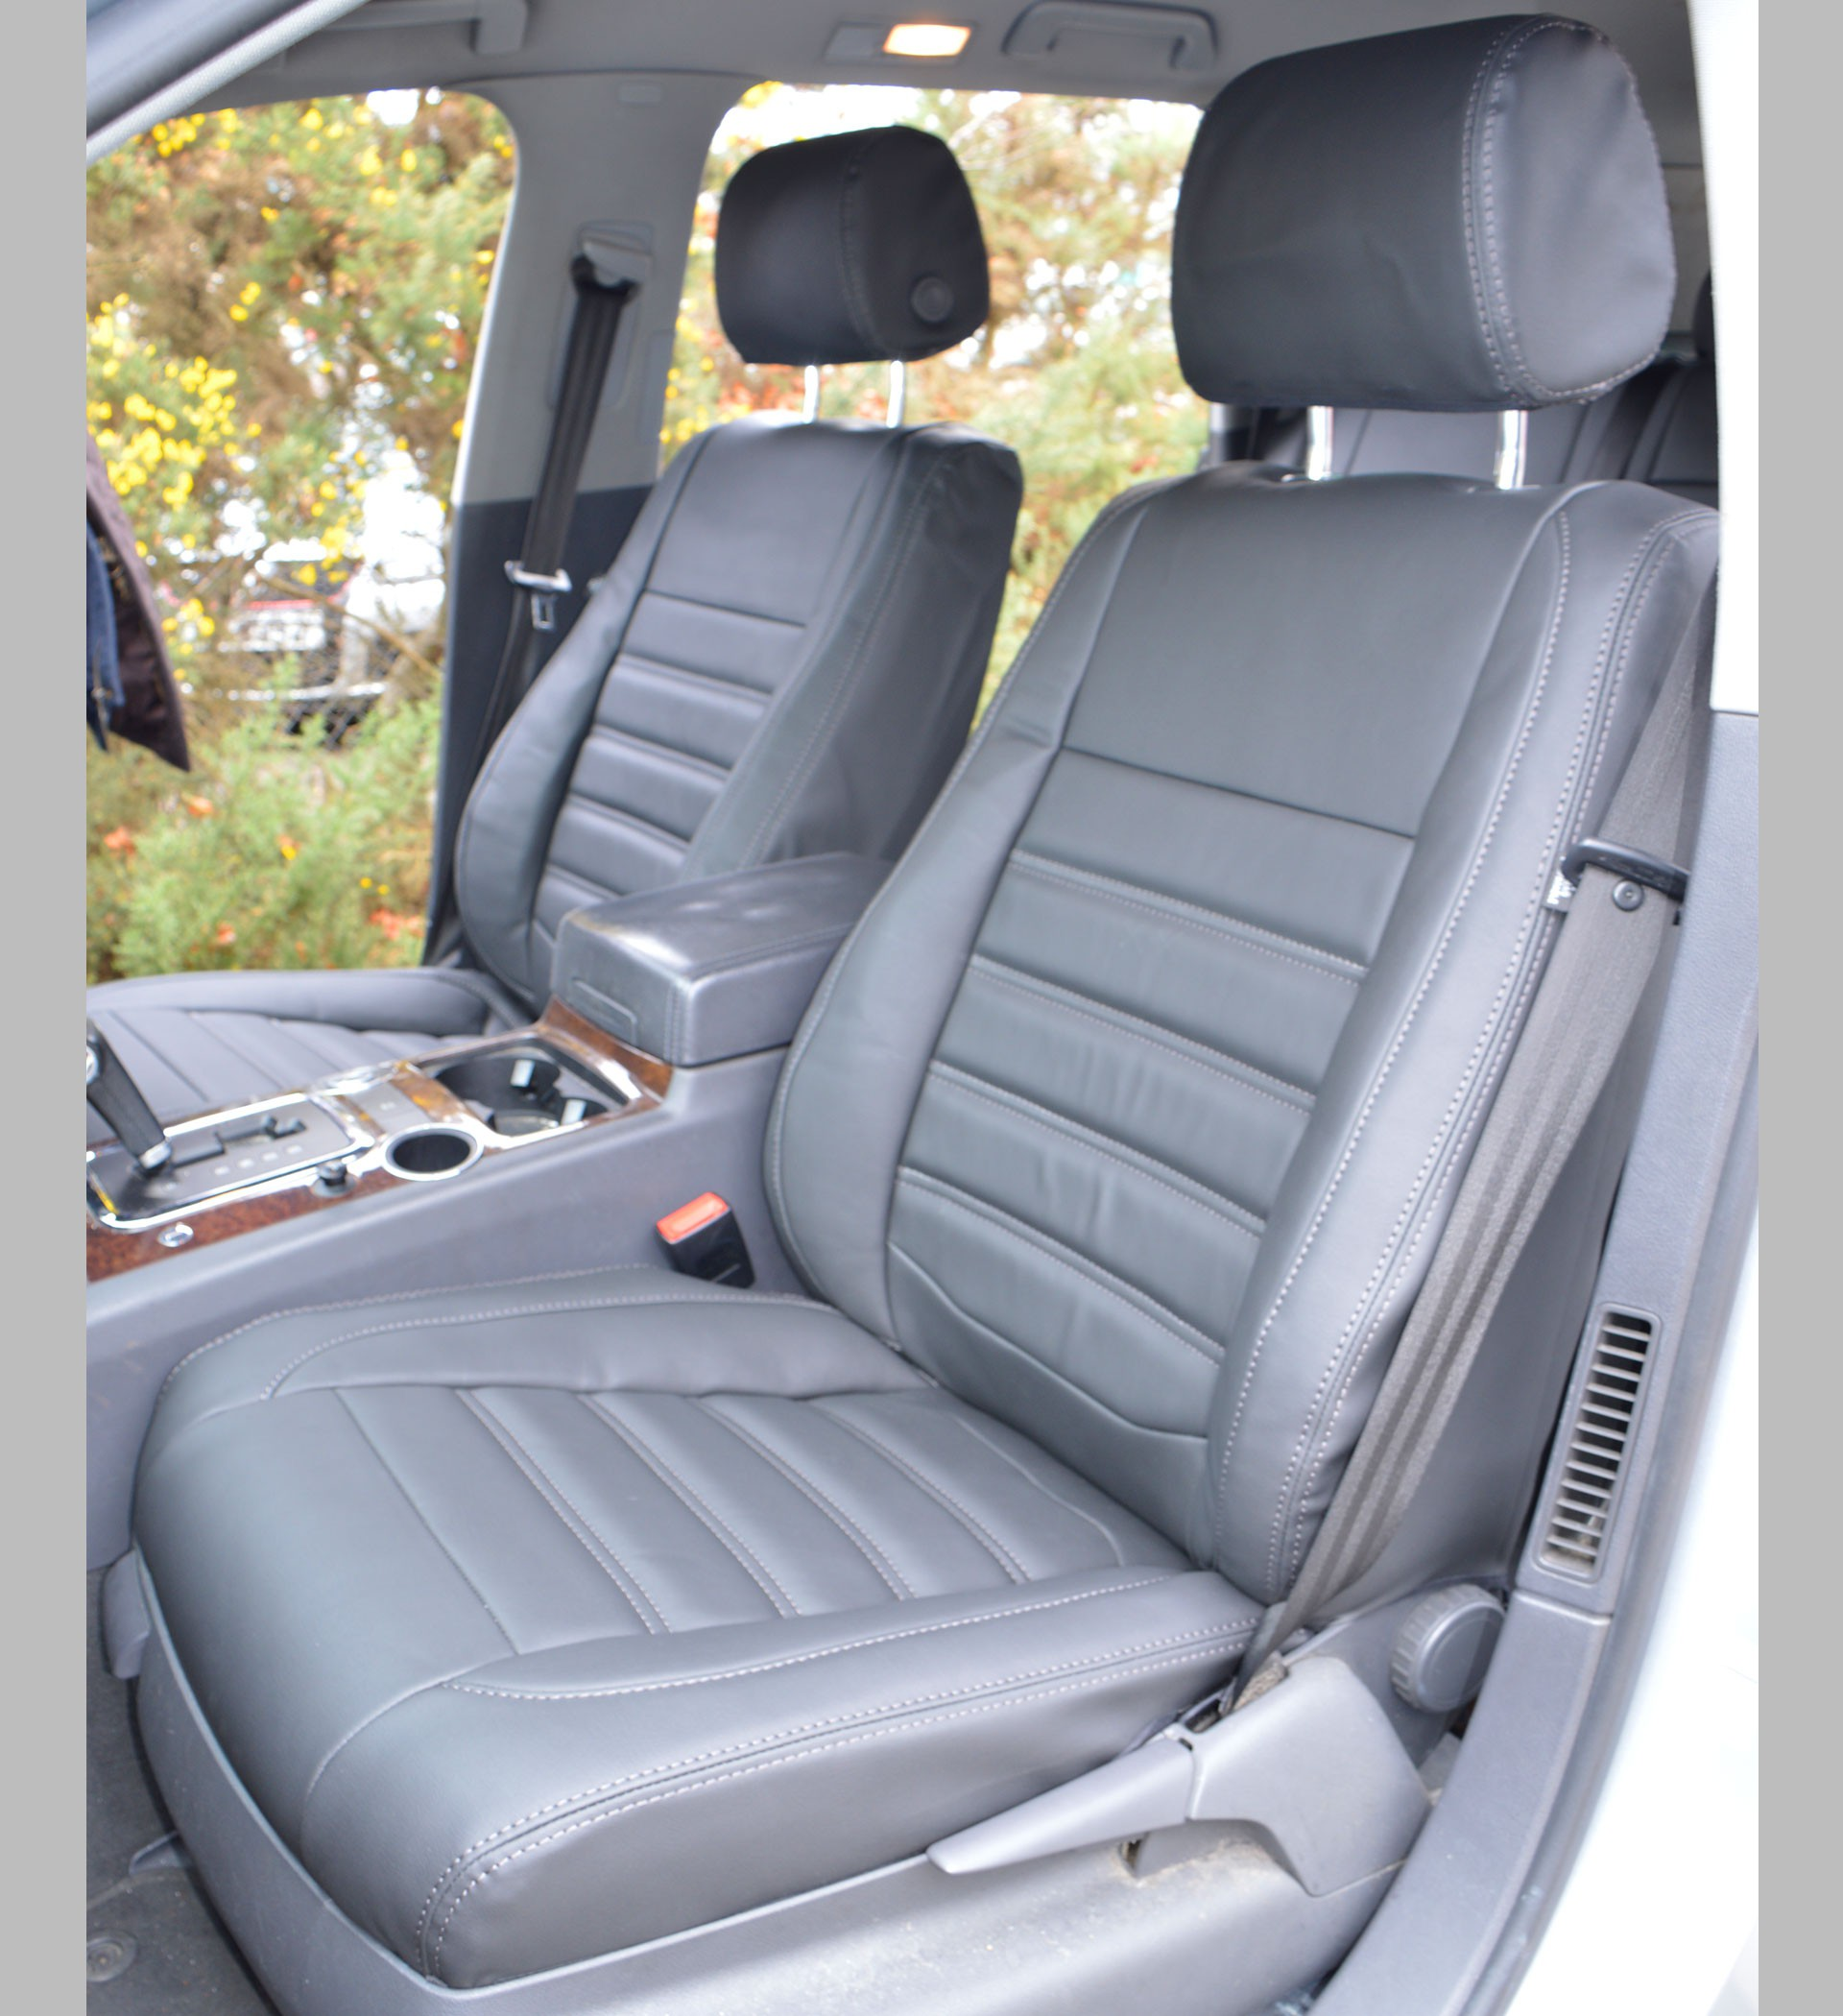 Volkswagen VW Touareg Tailored Car Seat Covers